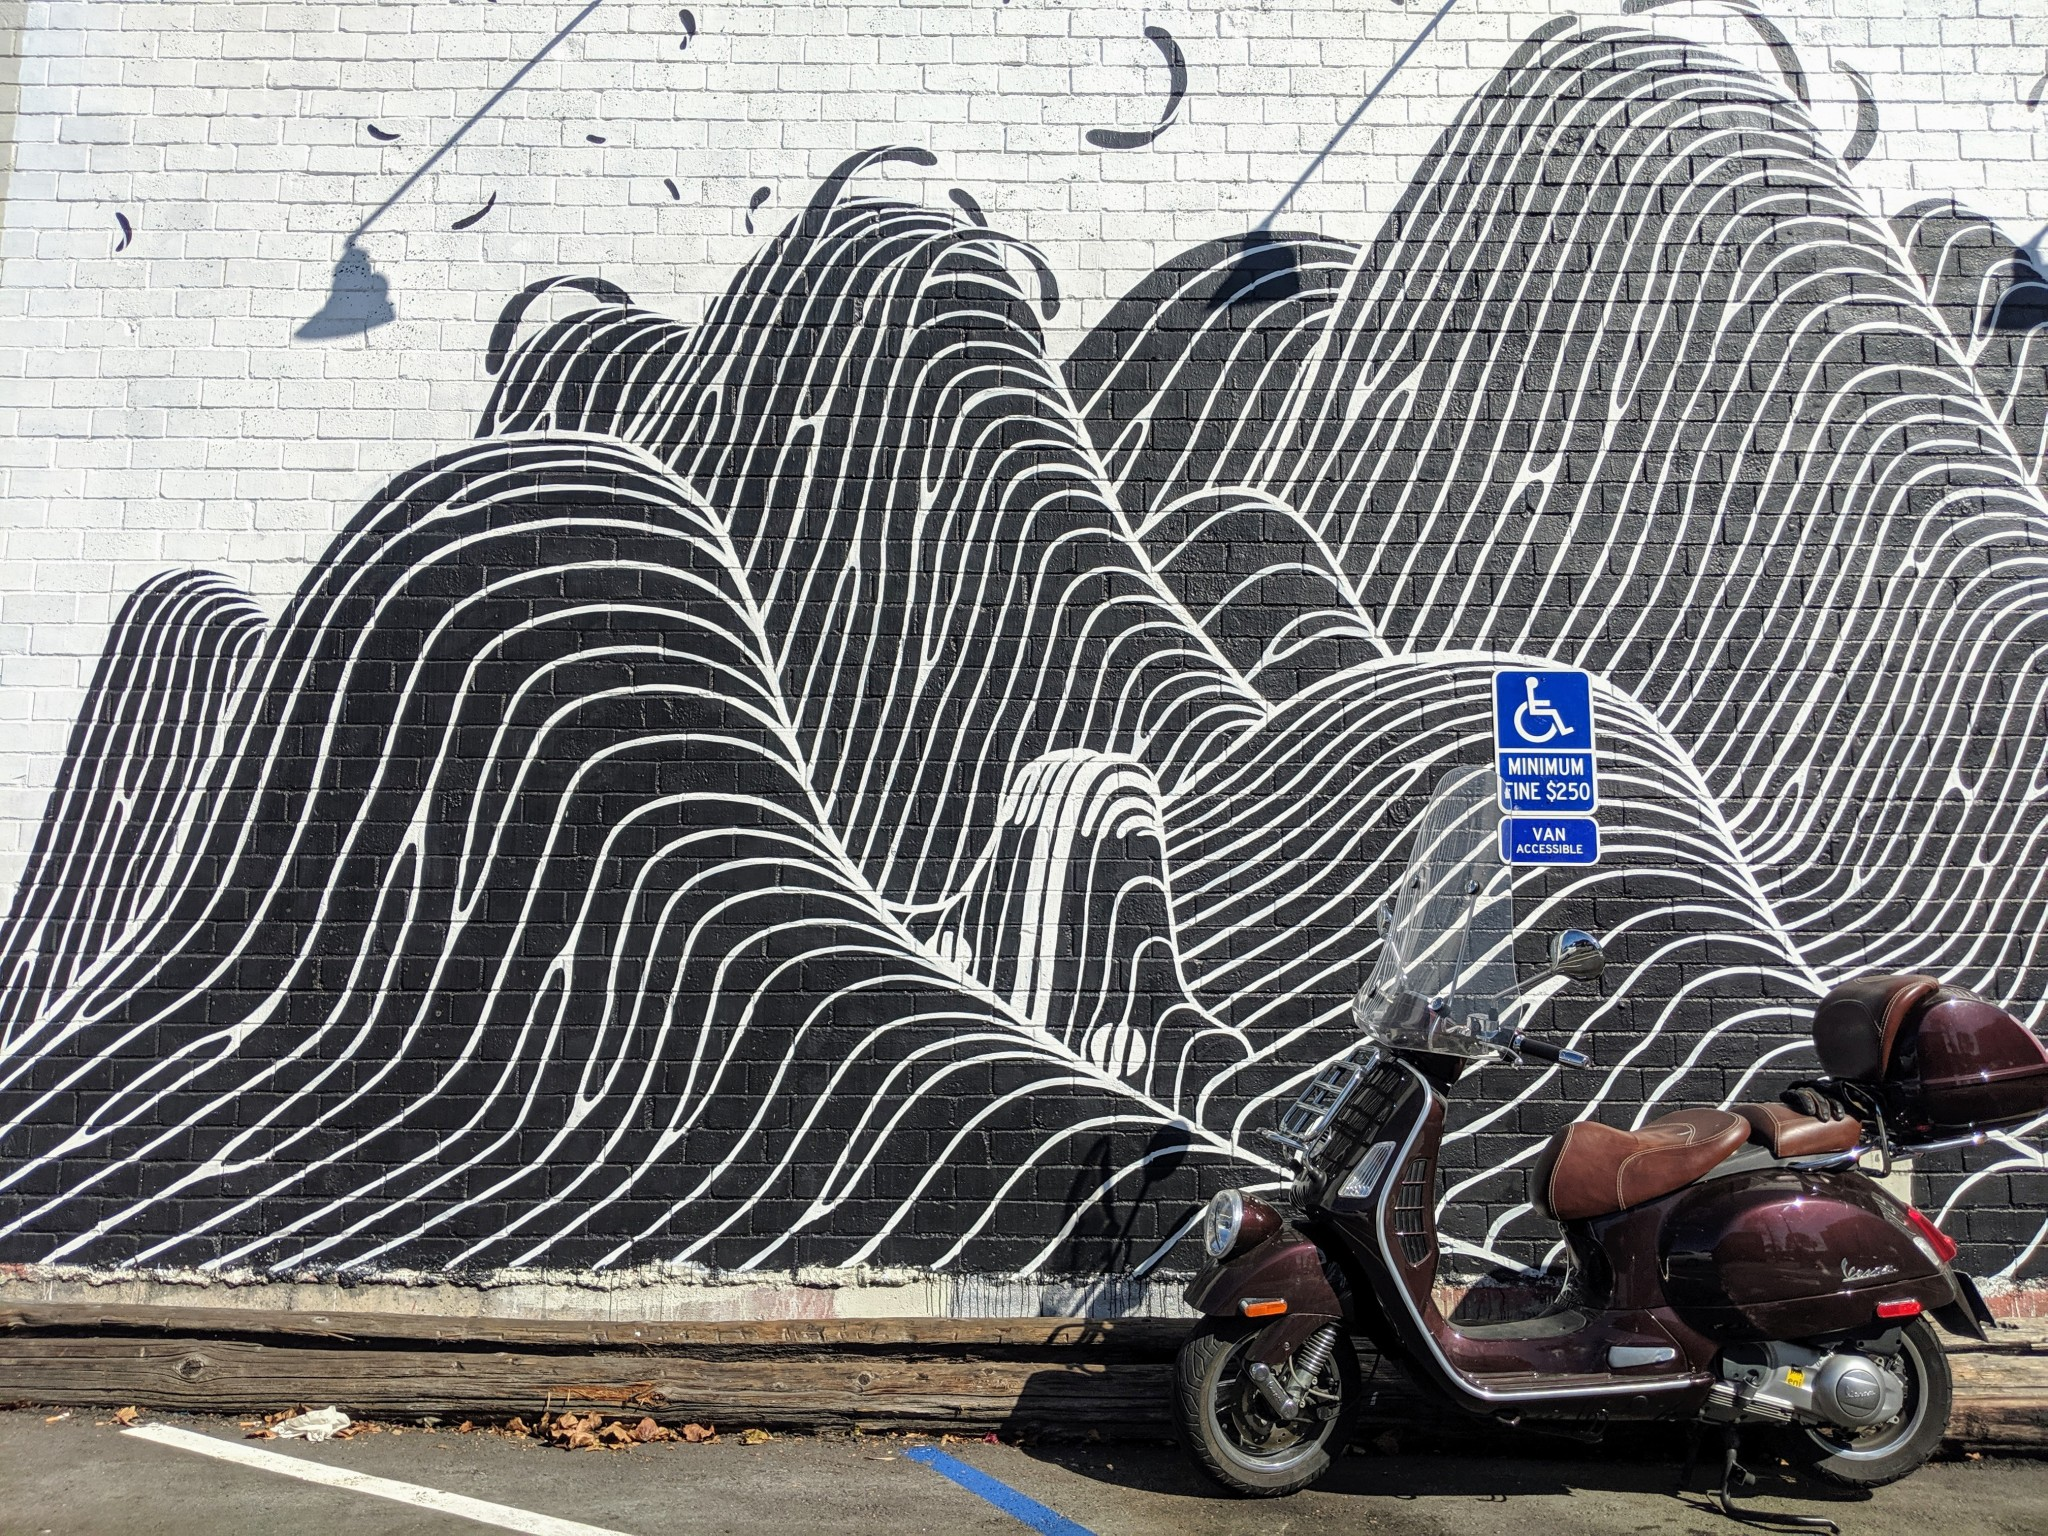 Mural: 3D Geometry & the Vespa. Mural created by artist Brendan Monroe for Converse's Wall to Wall project in Berkeley.